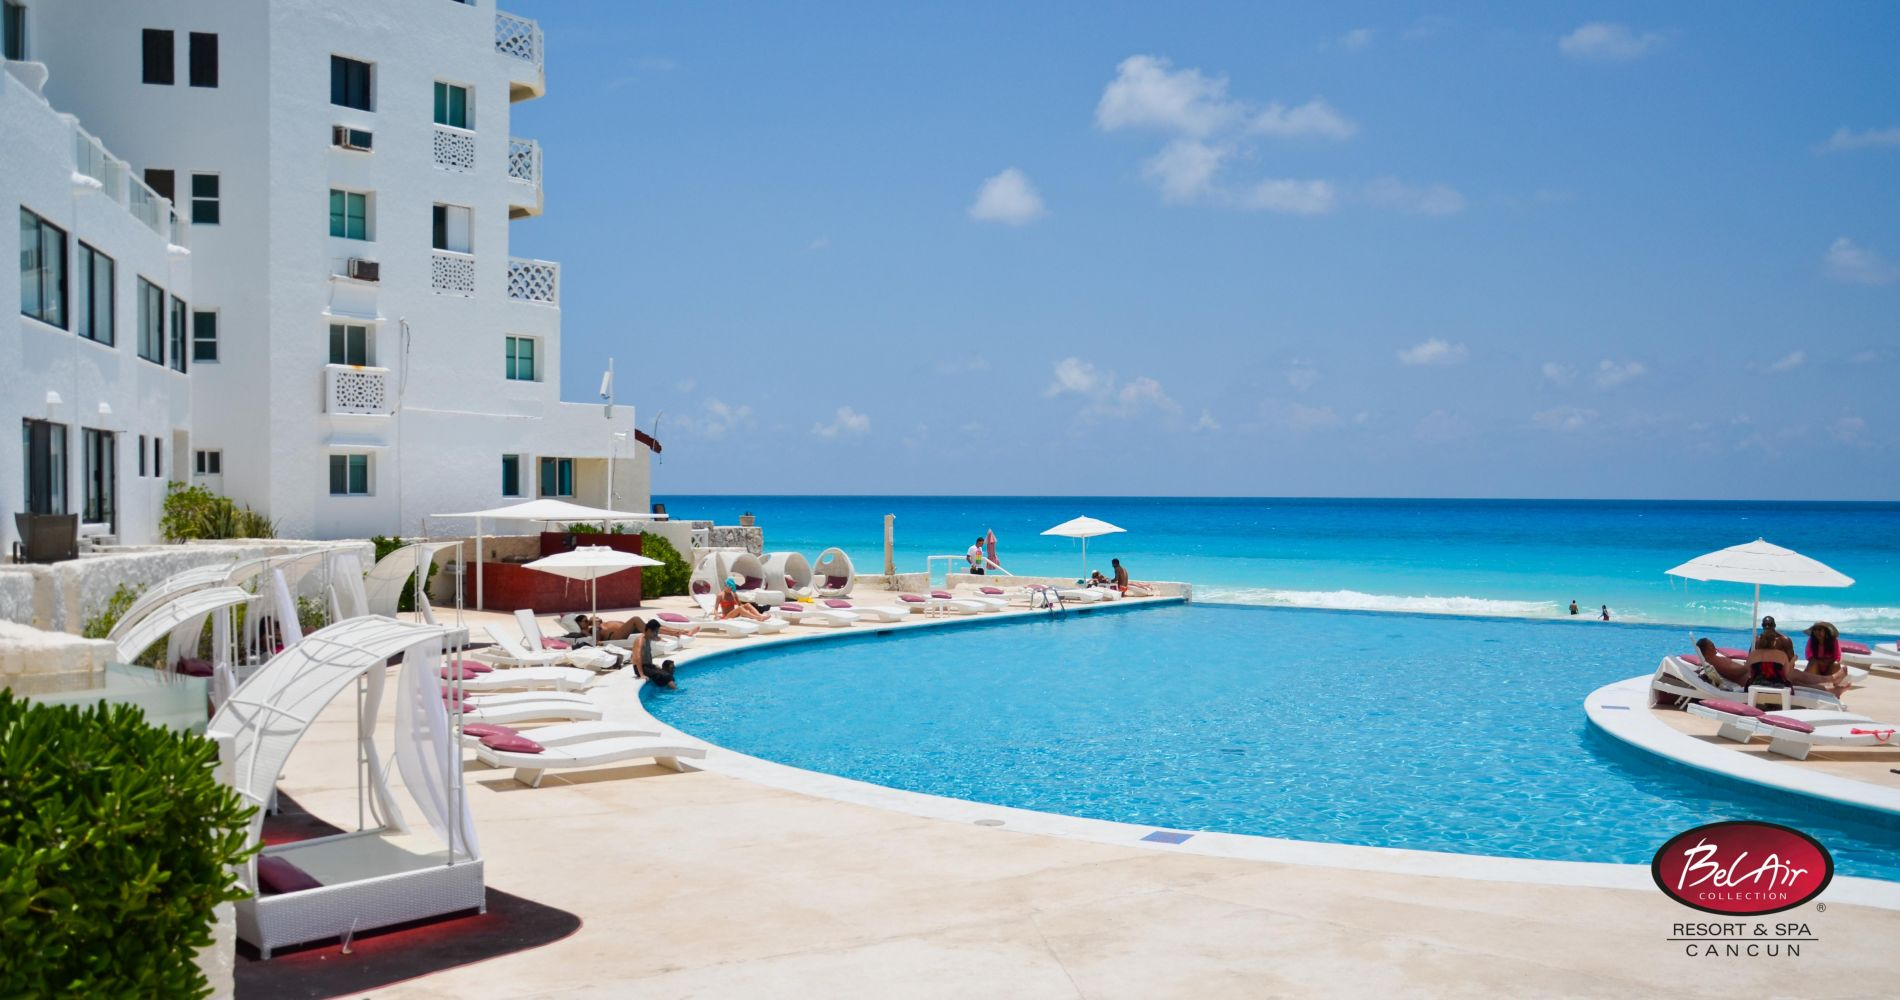 Bel Air Collection Resort & Spa Cancun Hotels And